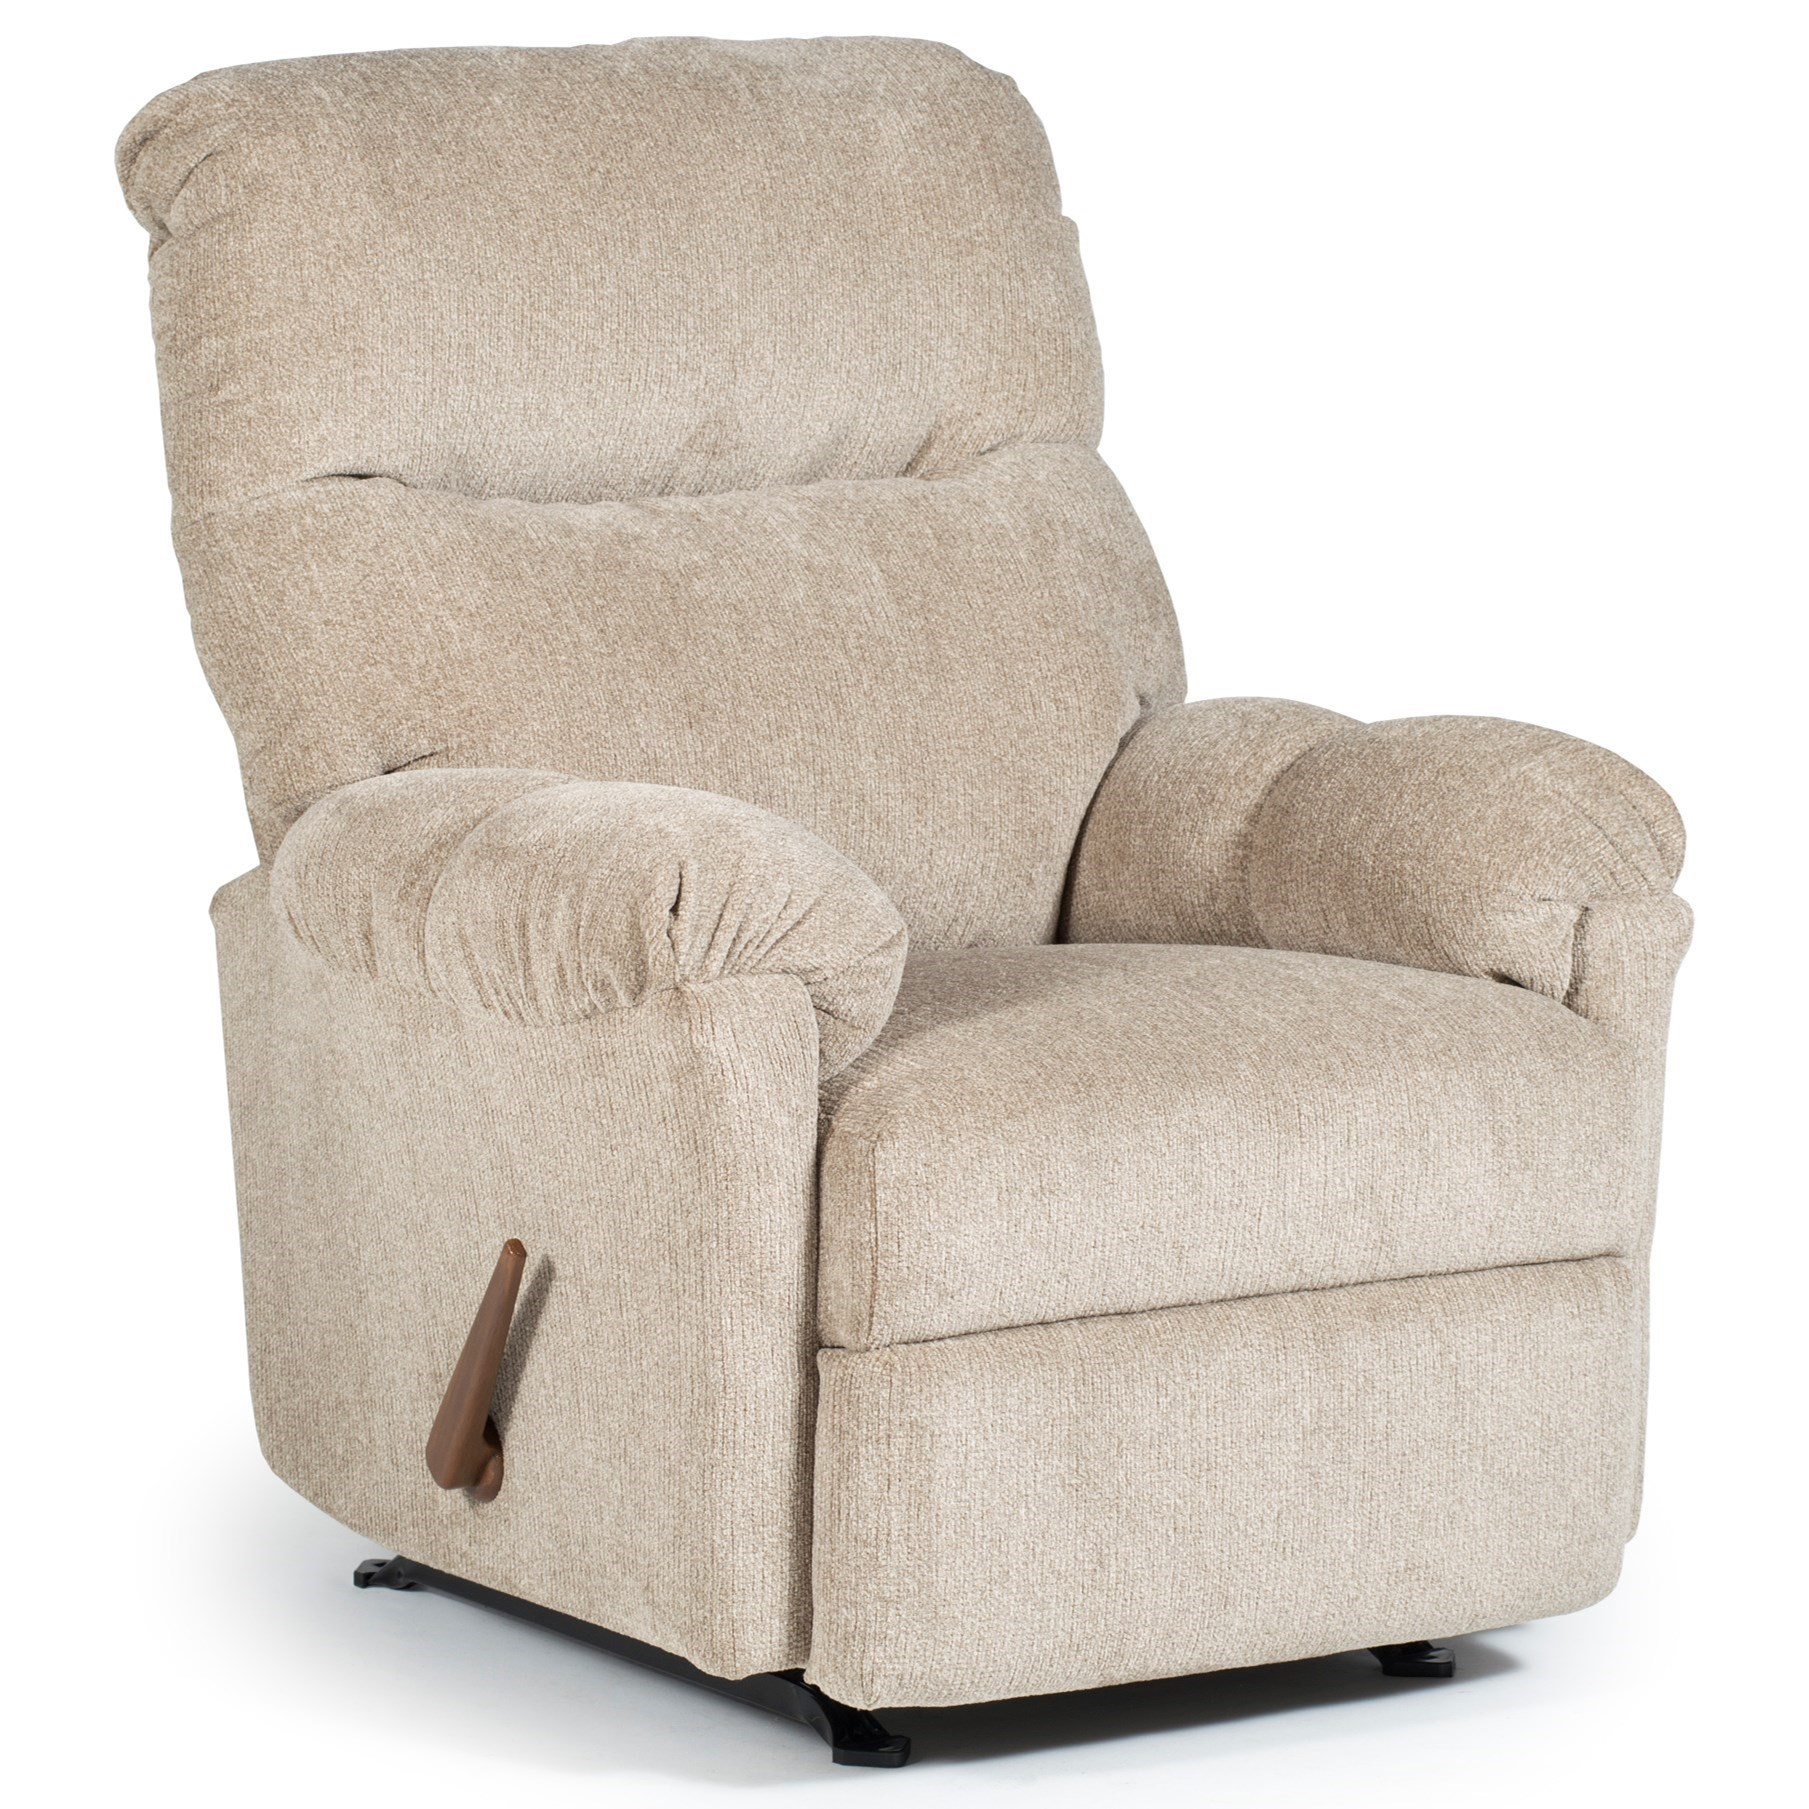 Best Home Furnishings Recliners Medium 2nw64 Balmore